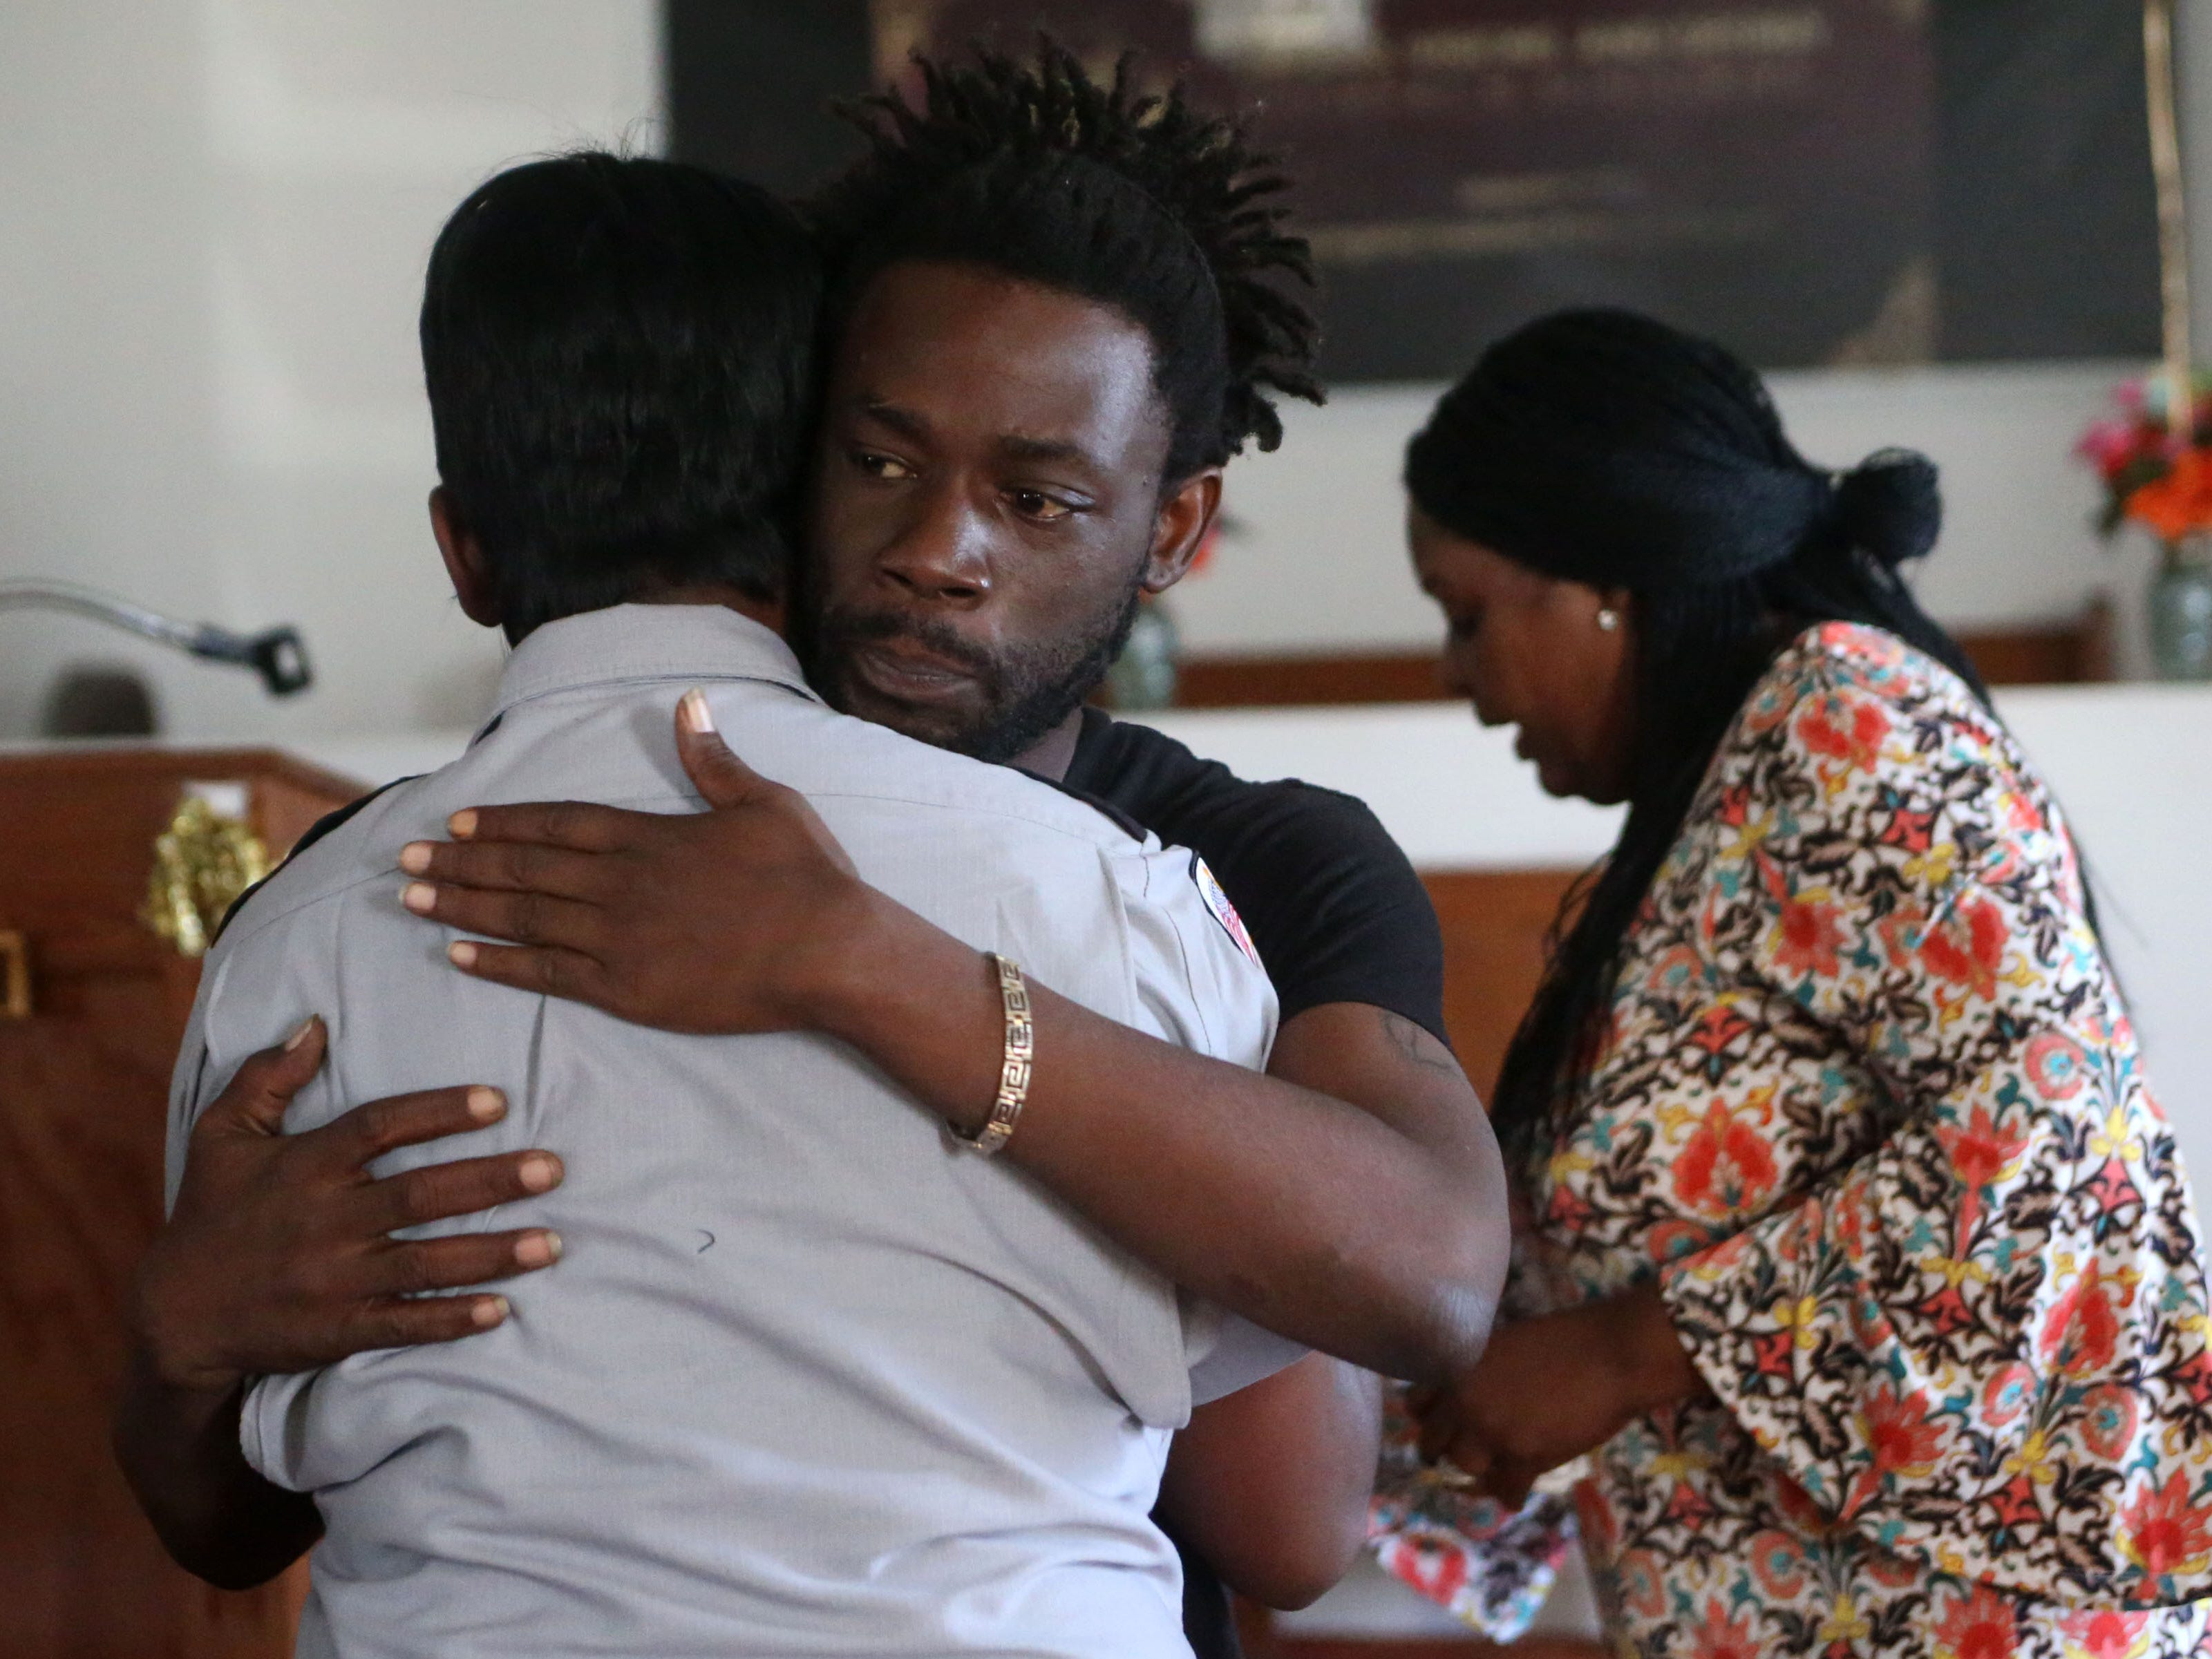 Lawrence Williams, brother of Demashell Bass, a woman who could not receive medical attention and died during the hurricane, 33, receives a comforting hug at the Dream, Vision, and Destiny (DVD) Ministry in Gretna, Fla., on Sunday Oct. 14, 2018, after Hurricane Michael hits the Florida panhandle.